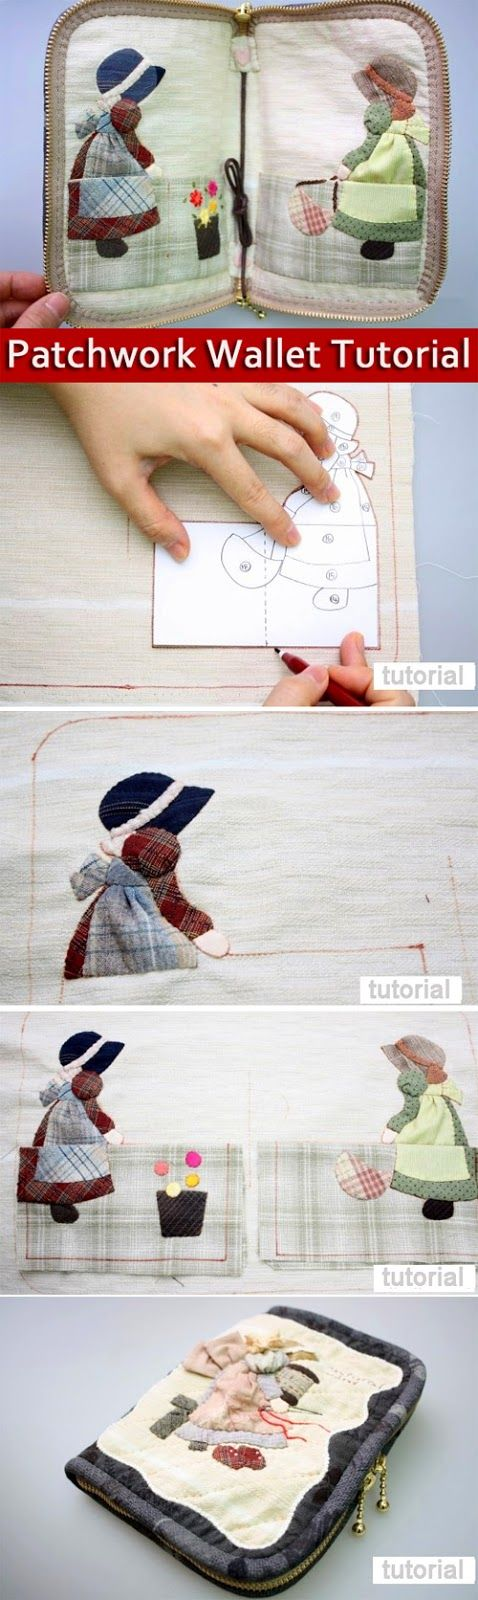 Zipper Wallet. DIY Photo Tutorial and Pattern. Patchwork and Quilted Sewing Projects.  http://www.handmadiya.com/2016/01/zipper-wallet-patchwork-sewing-projects.html